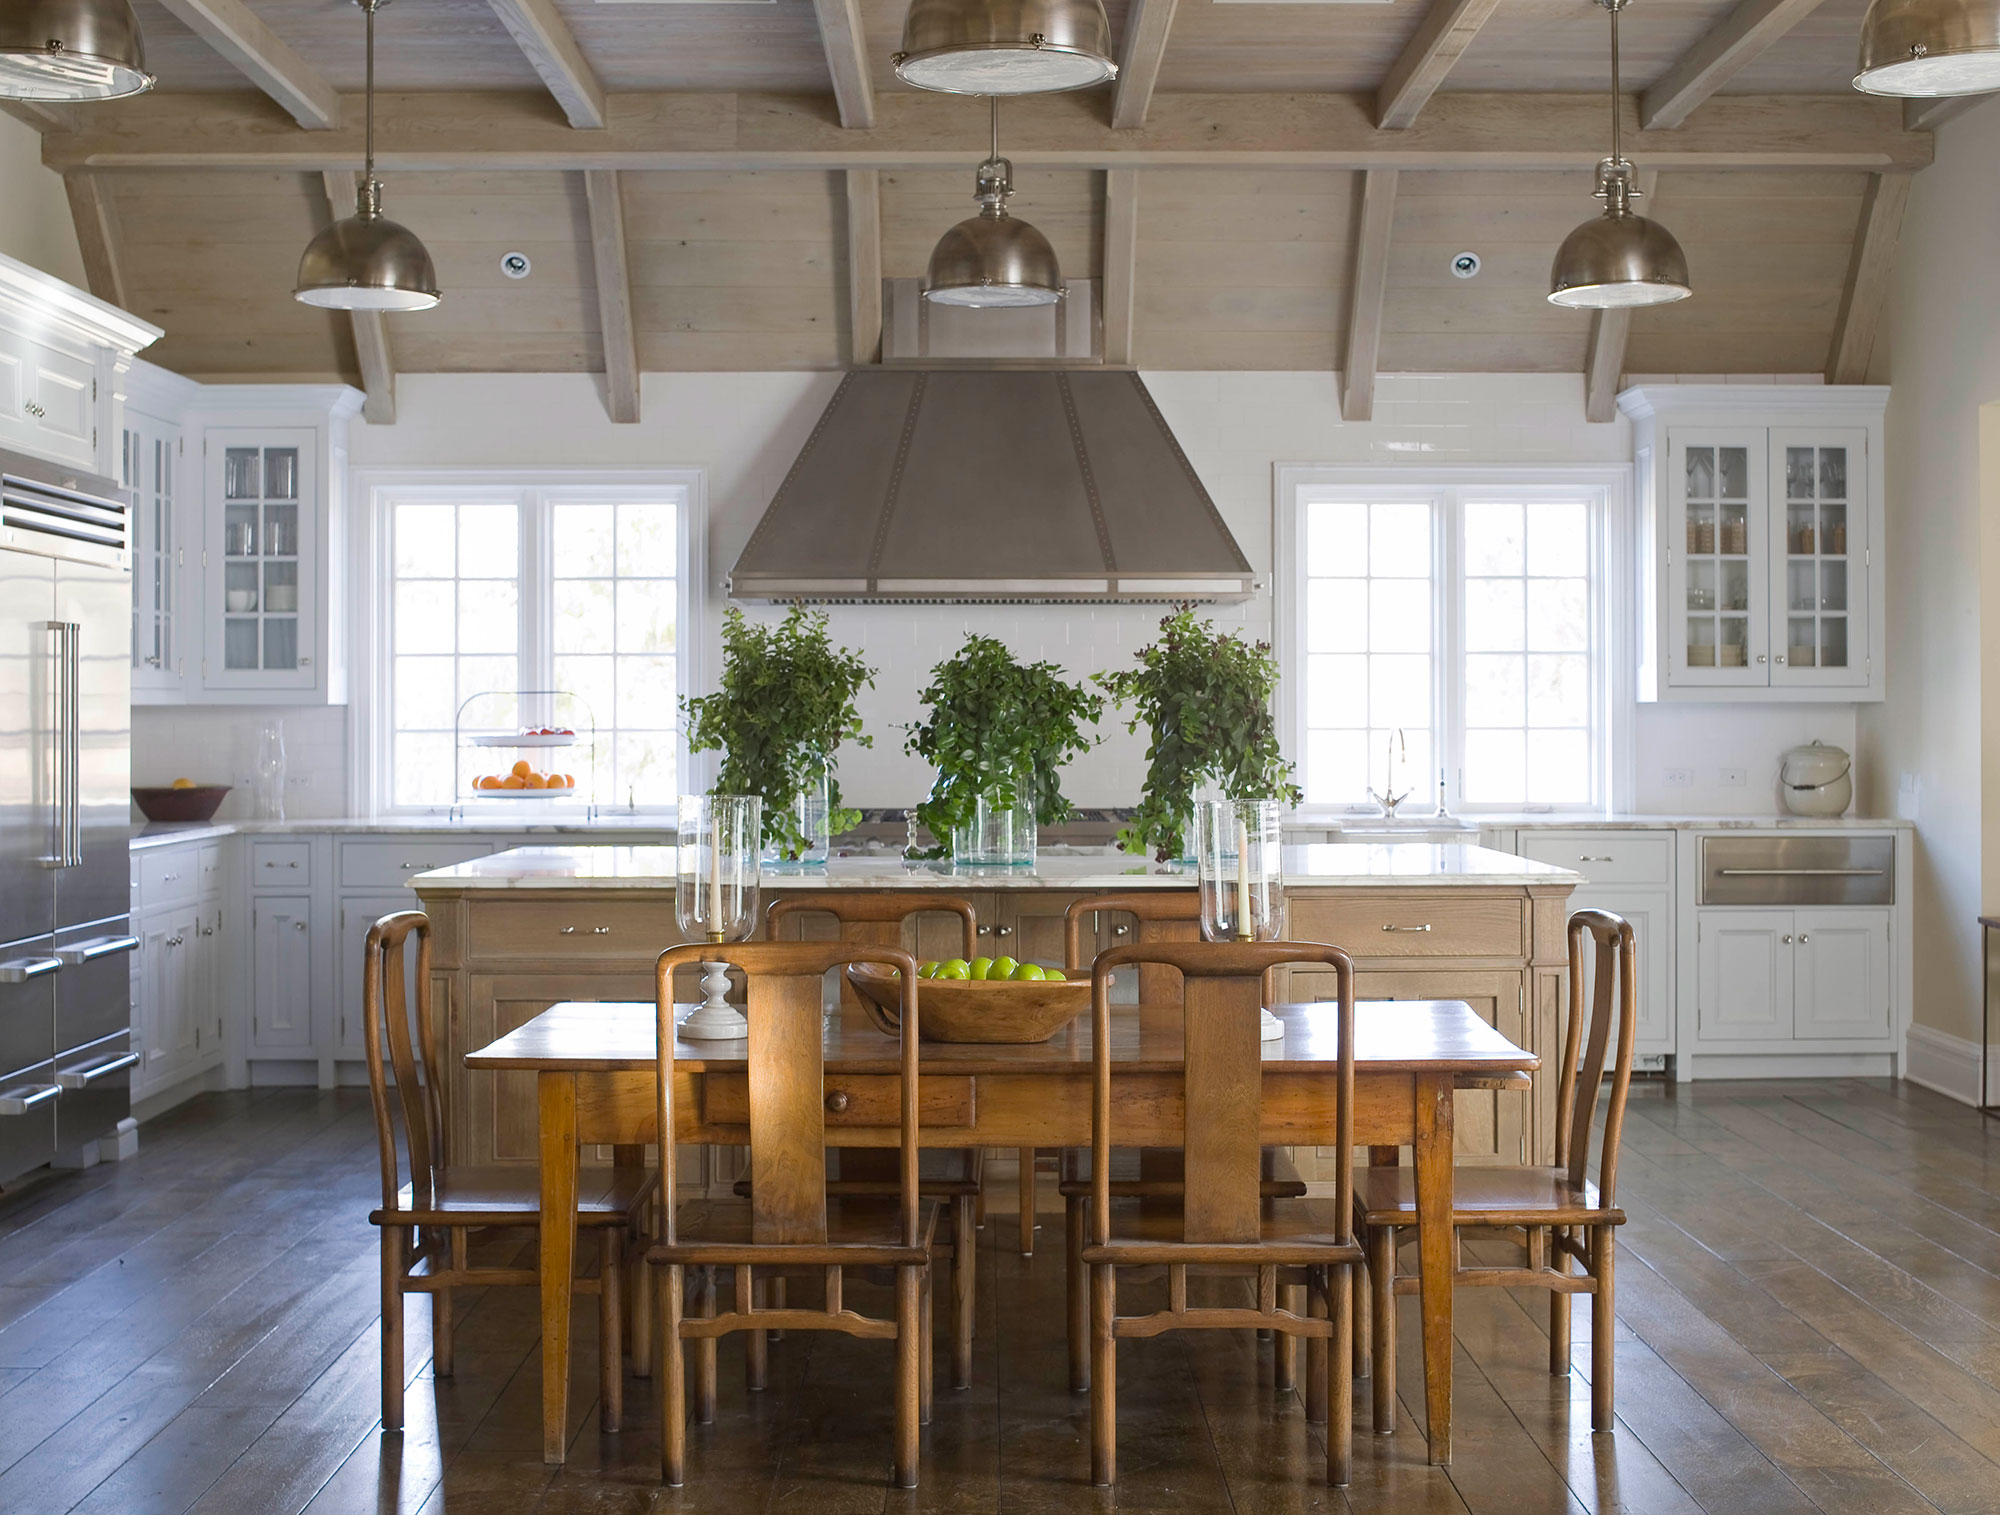 East Hampton kitchen with large island and stainless steel appliances by James Michael Howard